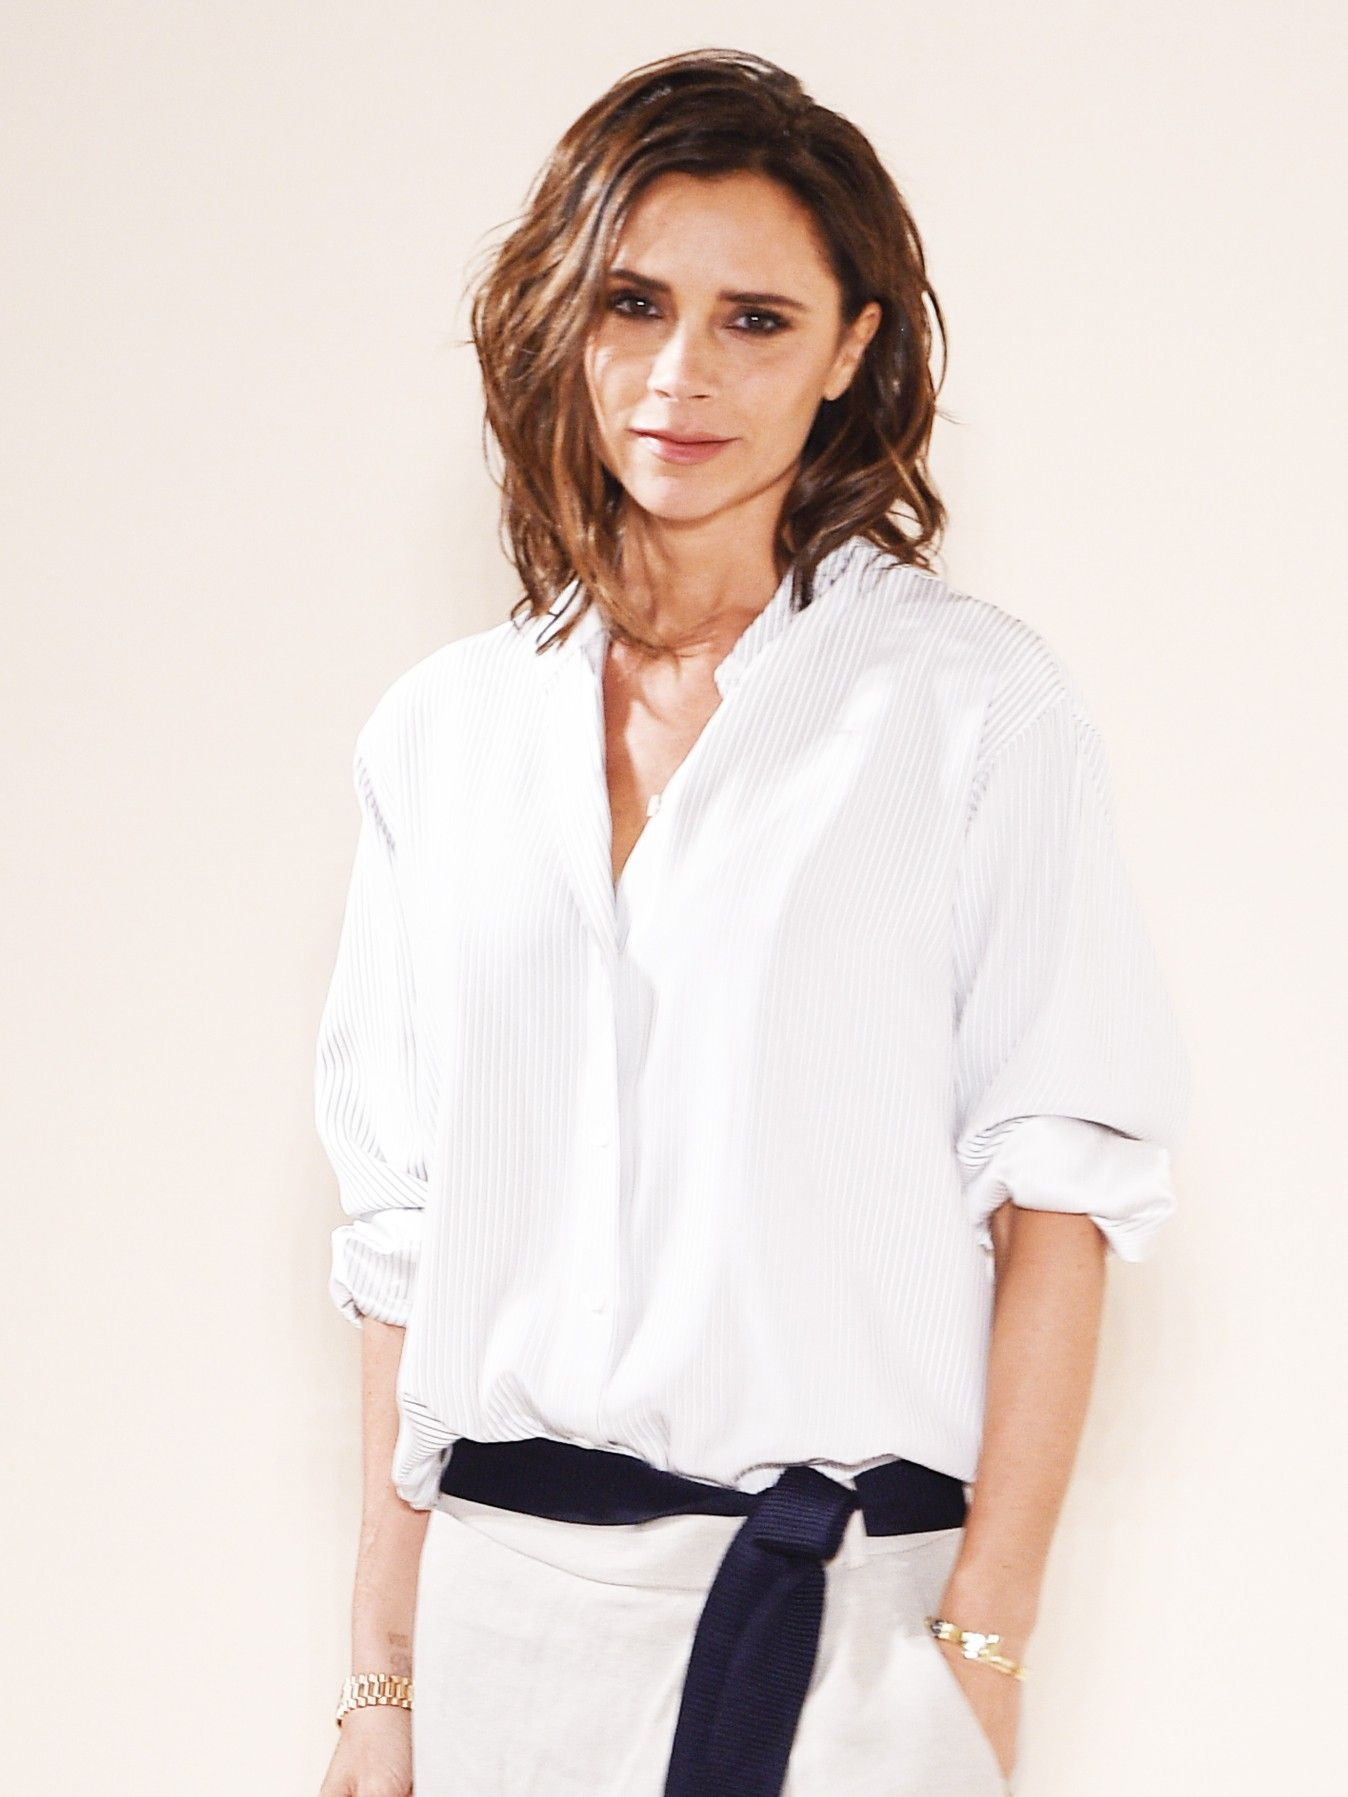 Victoria Beckham Is Looking So Good Right Now, and We Know Why